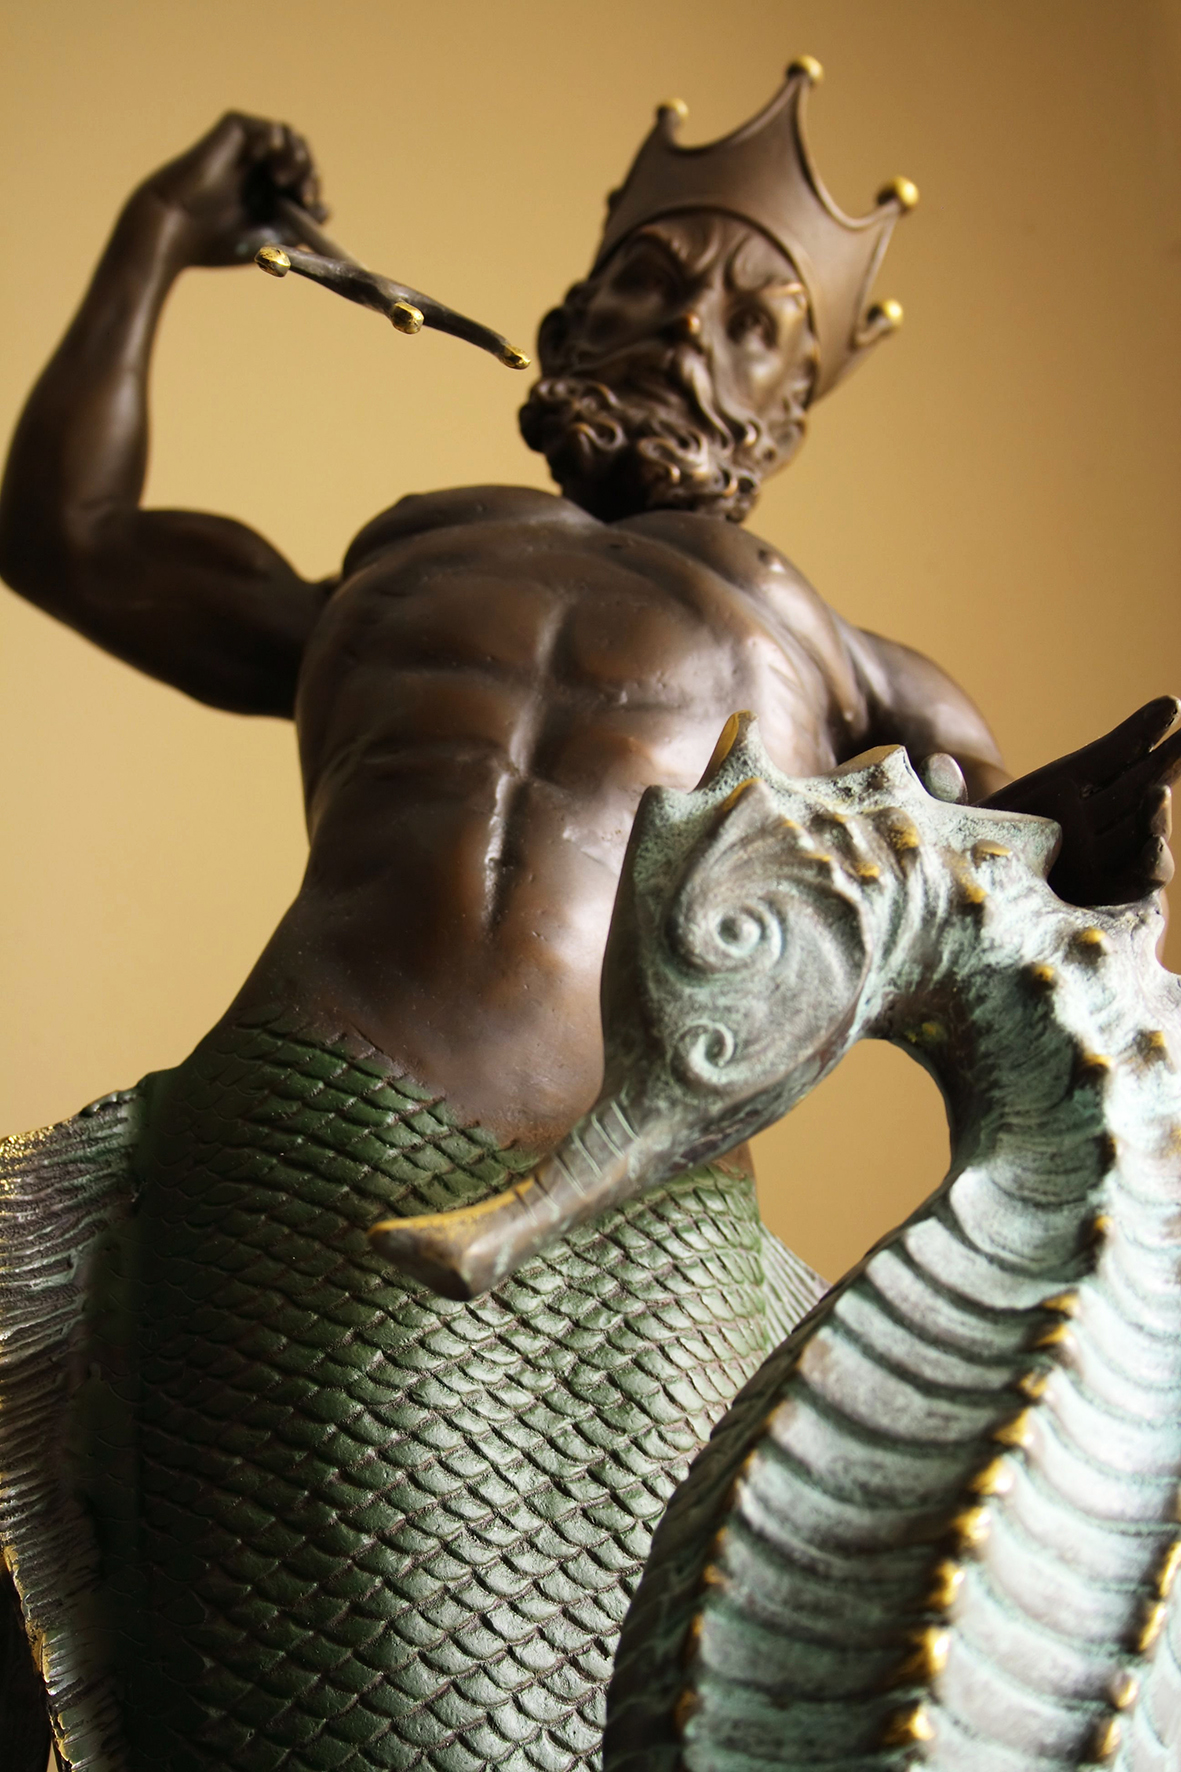 A statue of the Roman god Neptune with a seahorse © mmorell